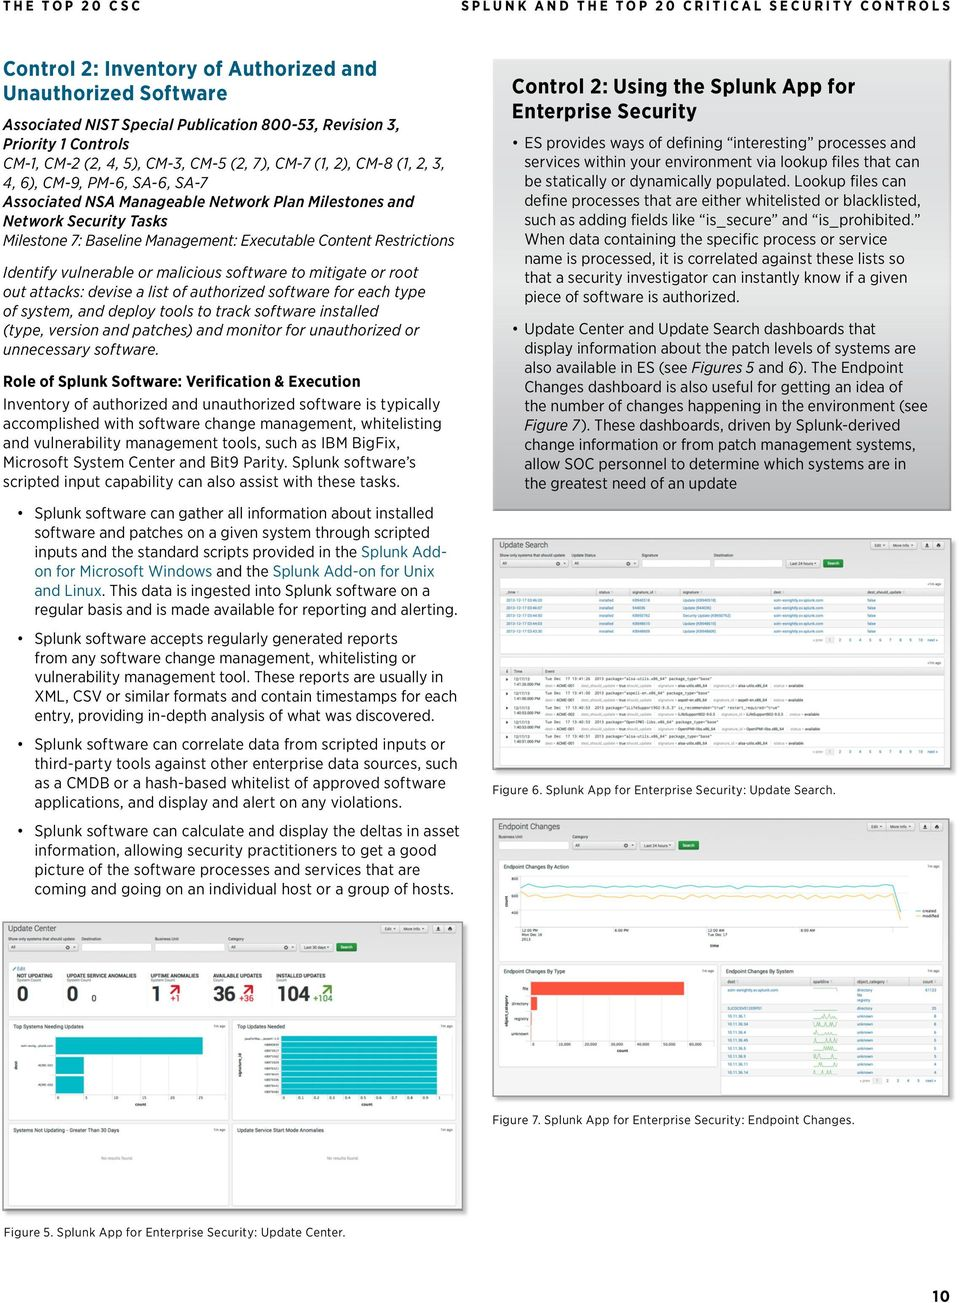 Splunk and the SANS Top 20 Critical Security Controls  Mapping